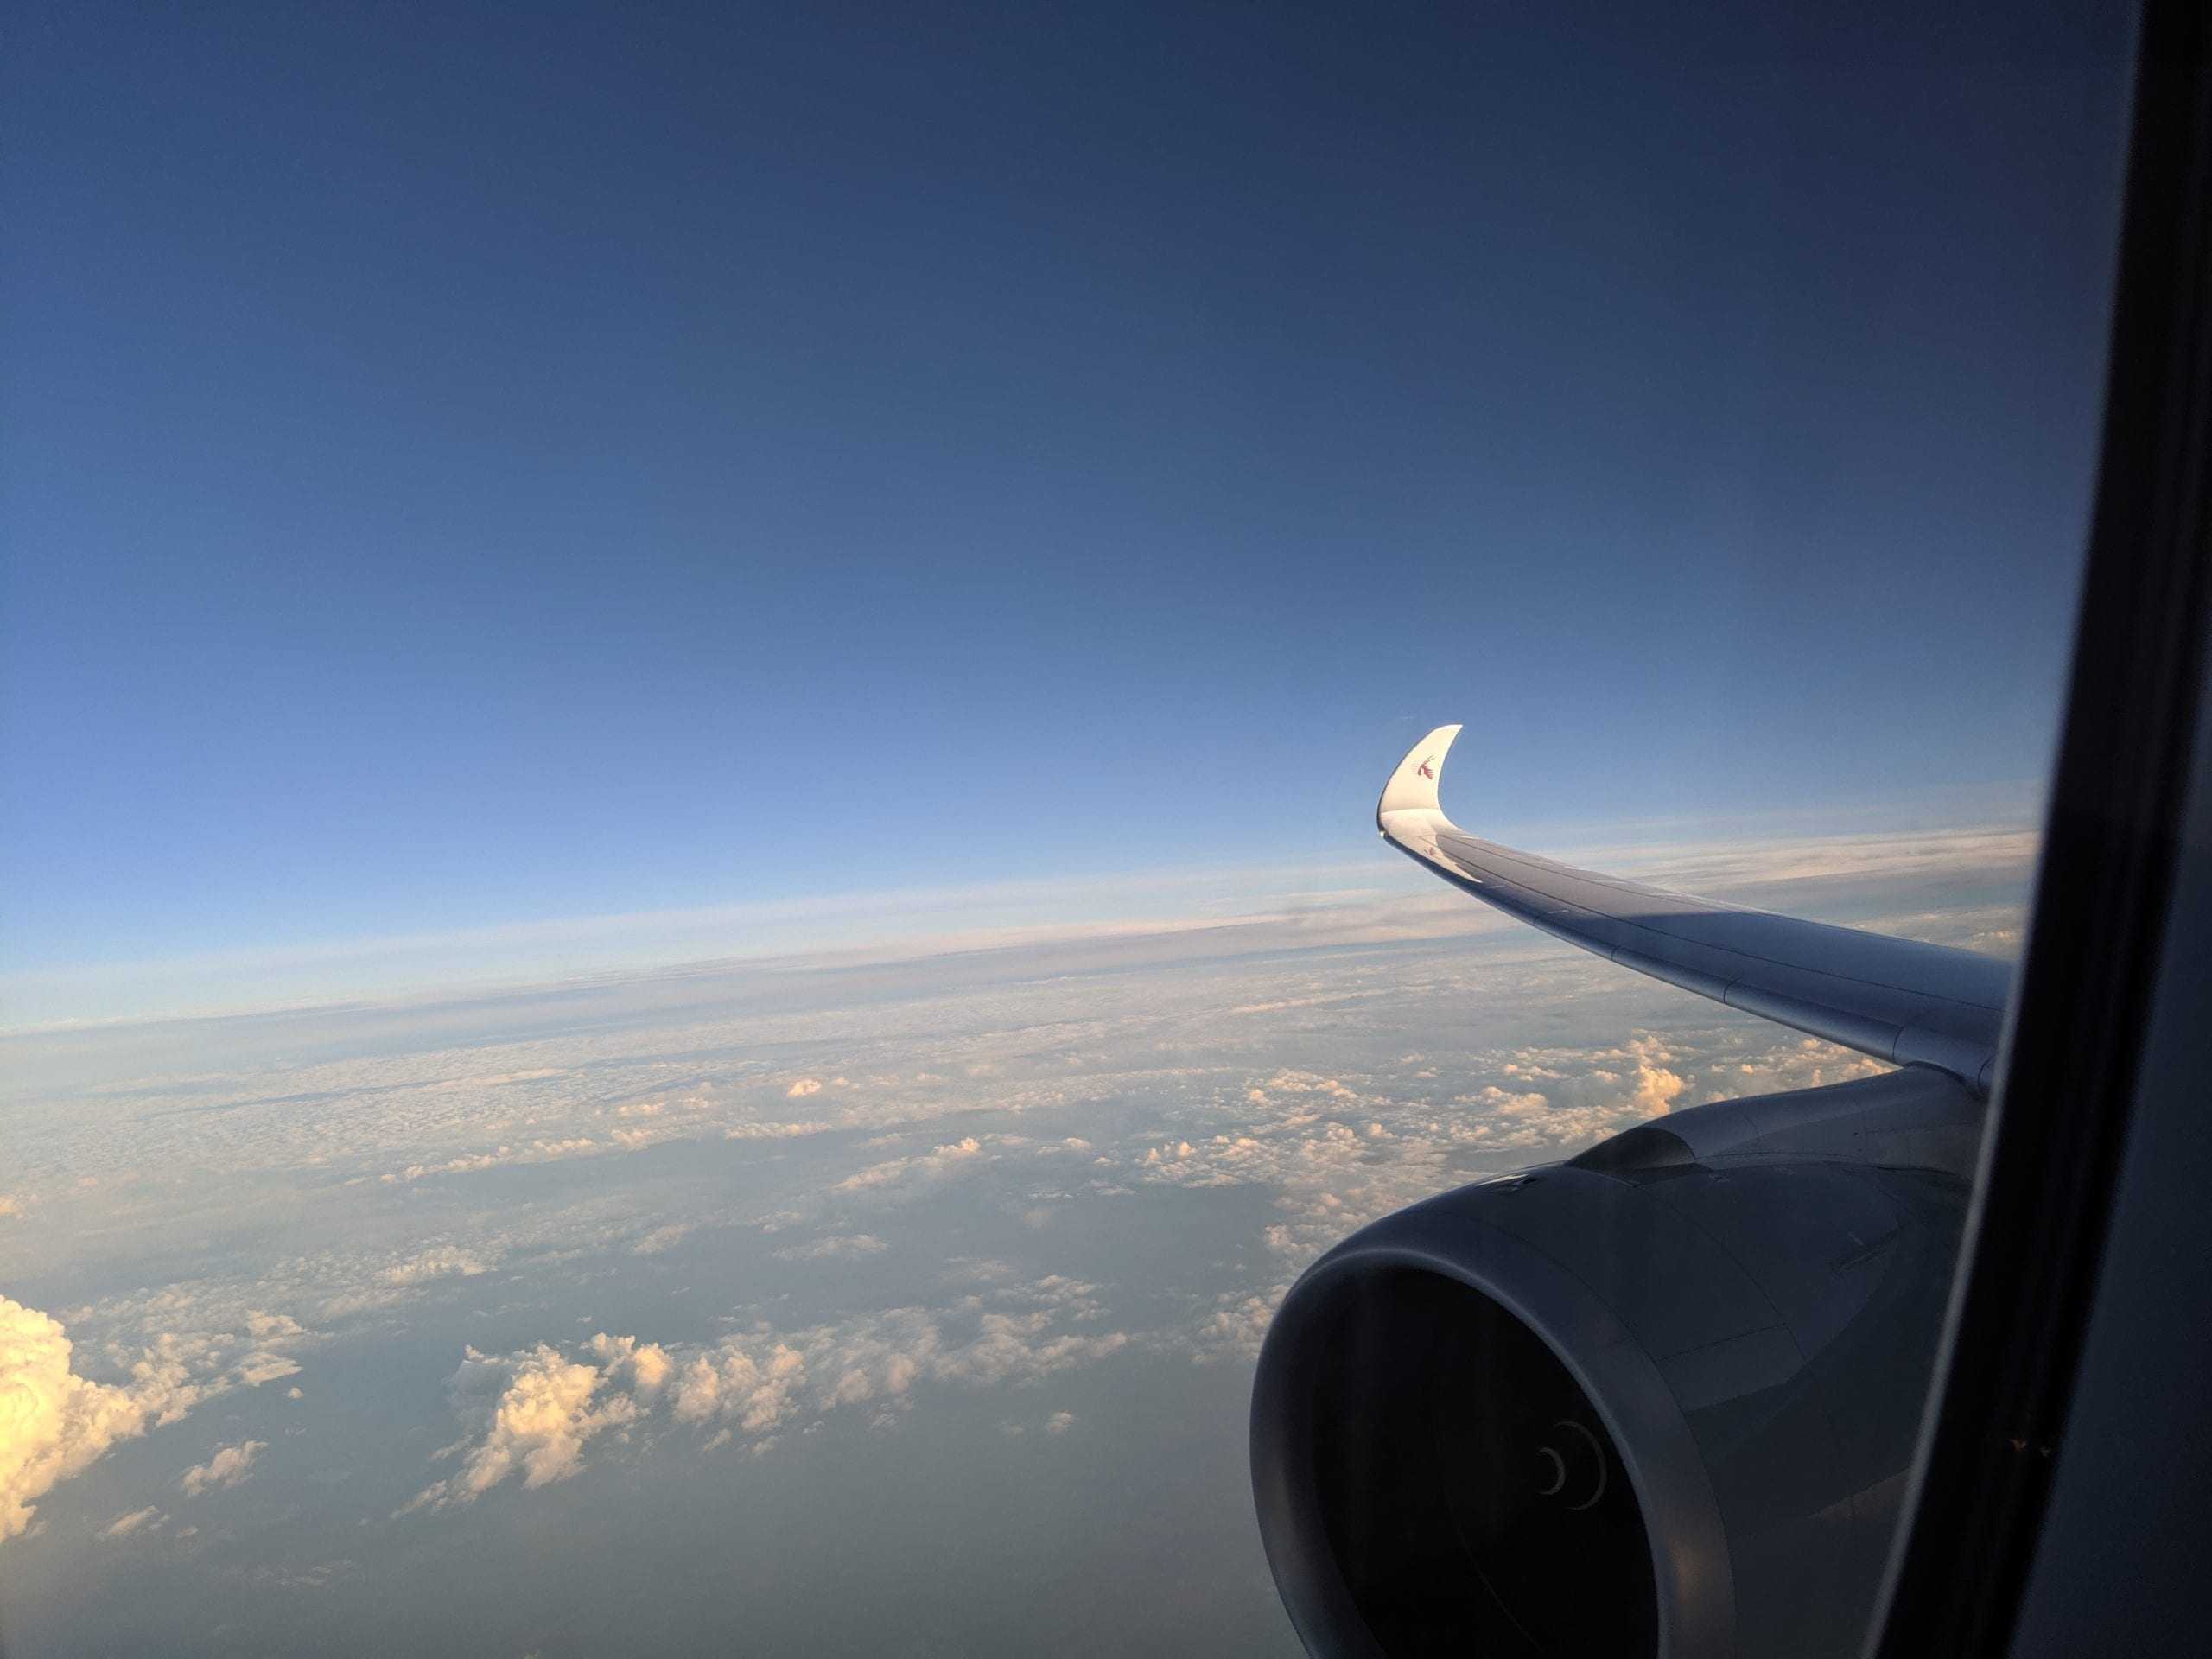 qatar airways wing view